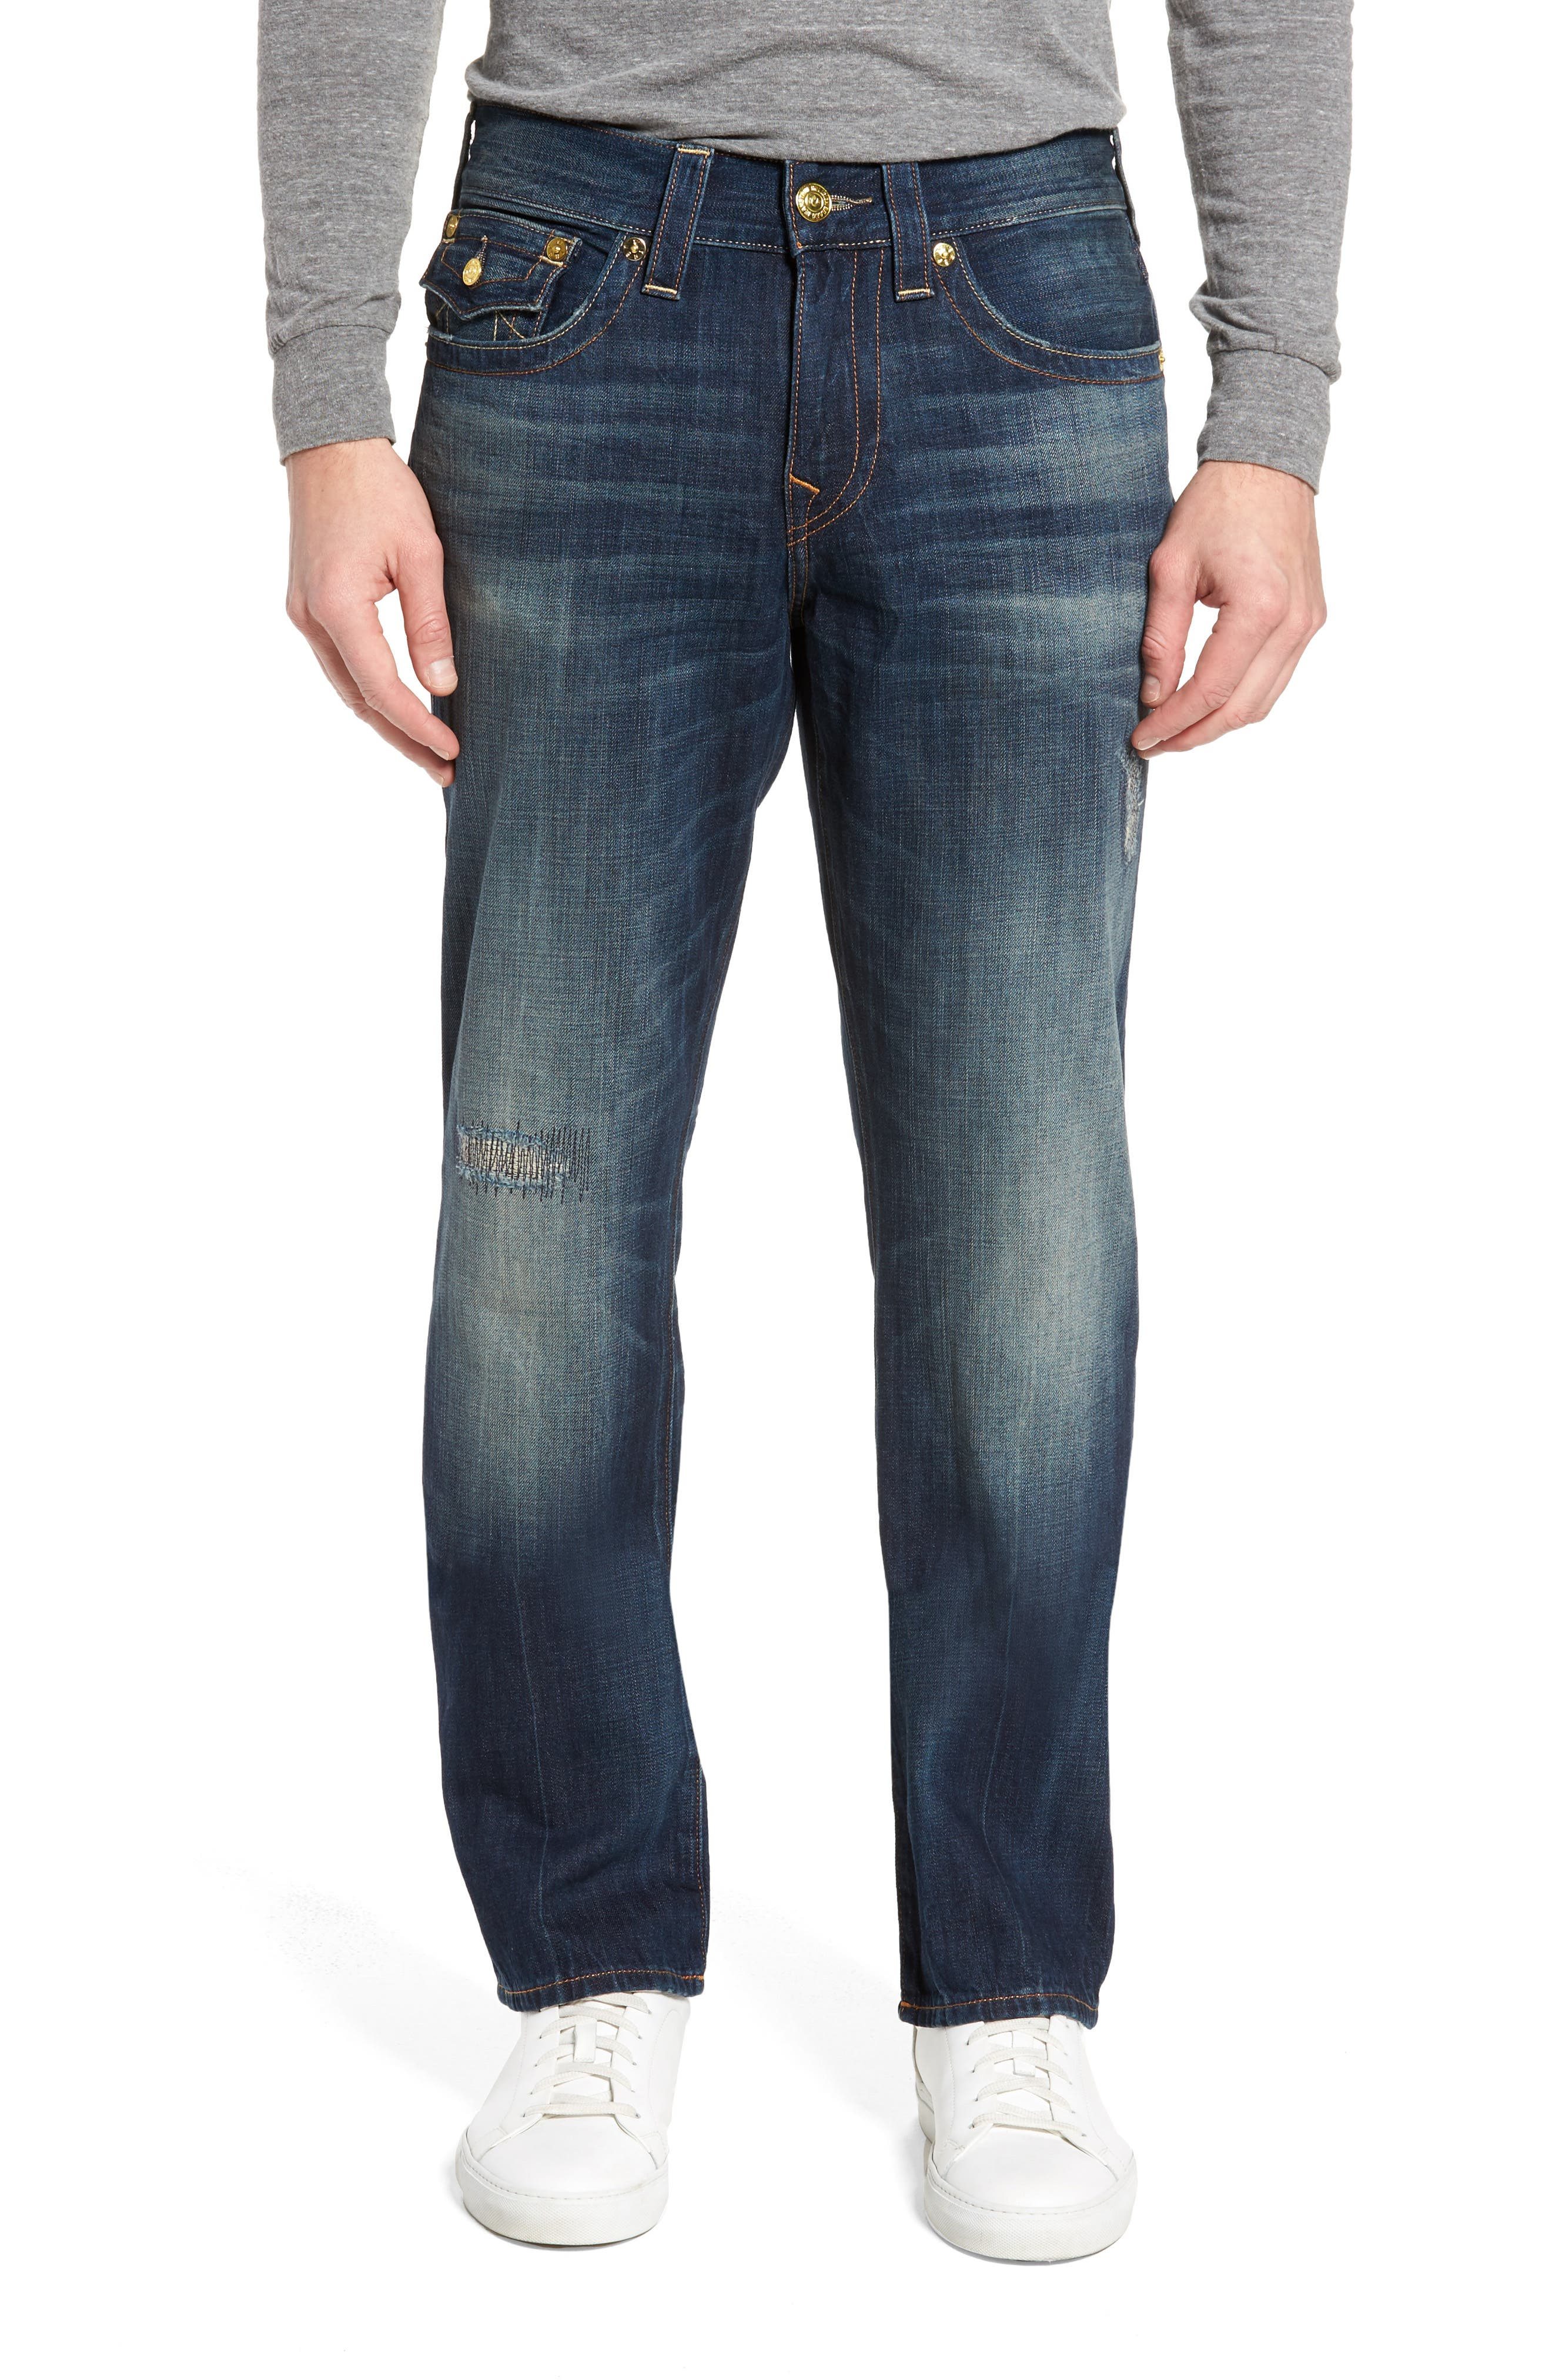 Geno Straight Leg Jeans,                             Main thumbnail 1, color,                             Mended Center Stage